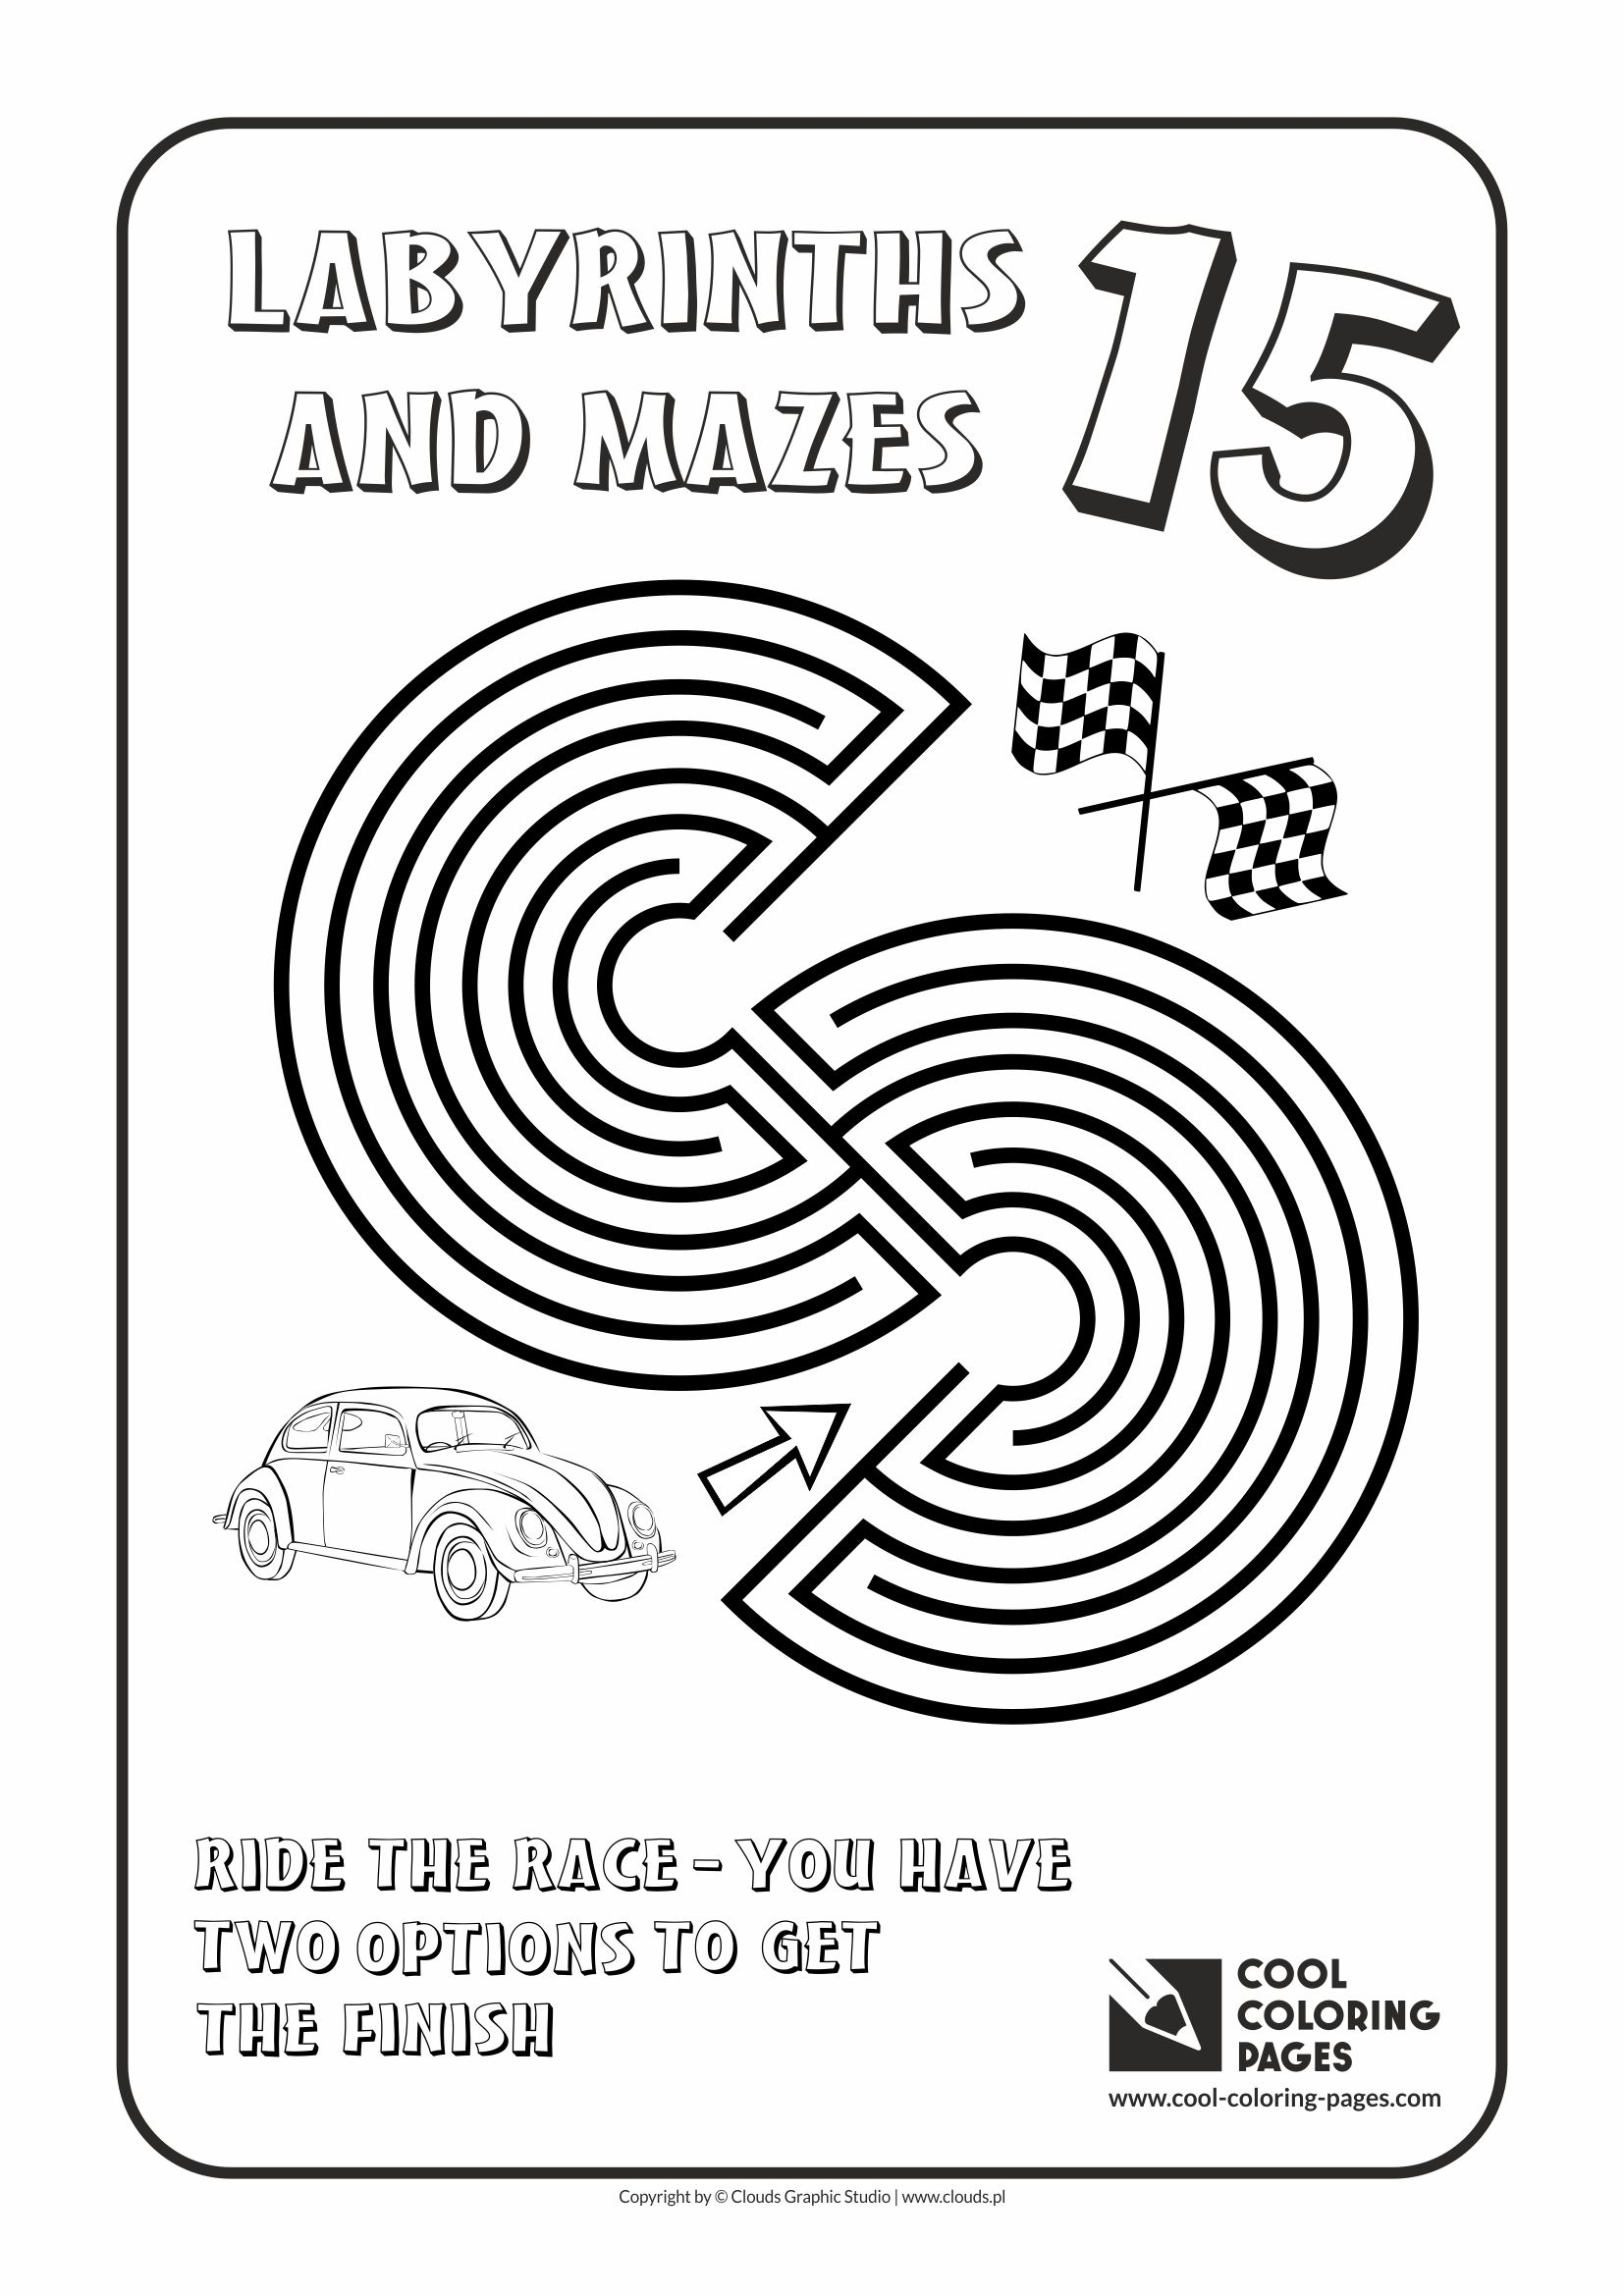 Cool Coloring Pages - Labyrinths and mazes / Maze no 15